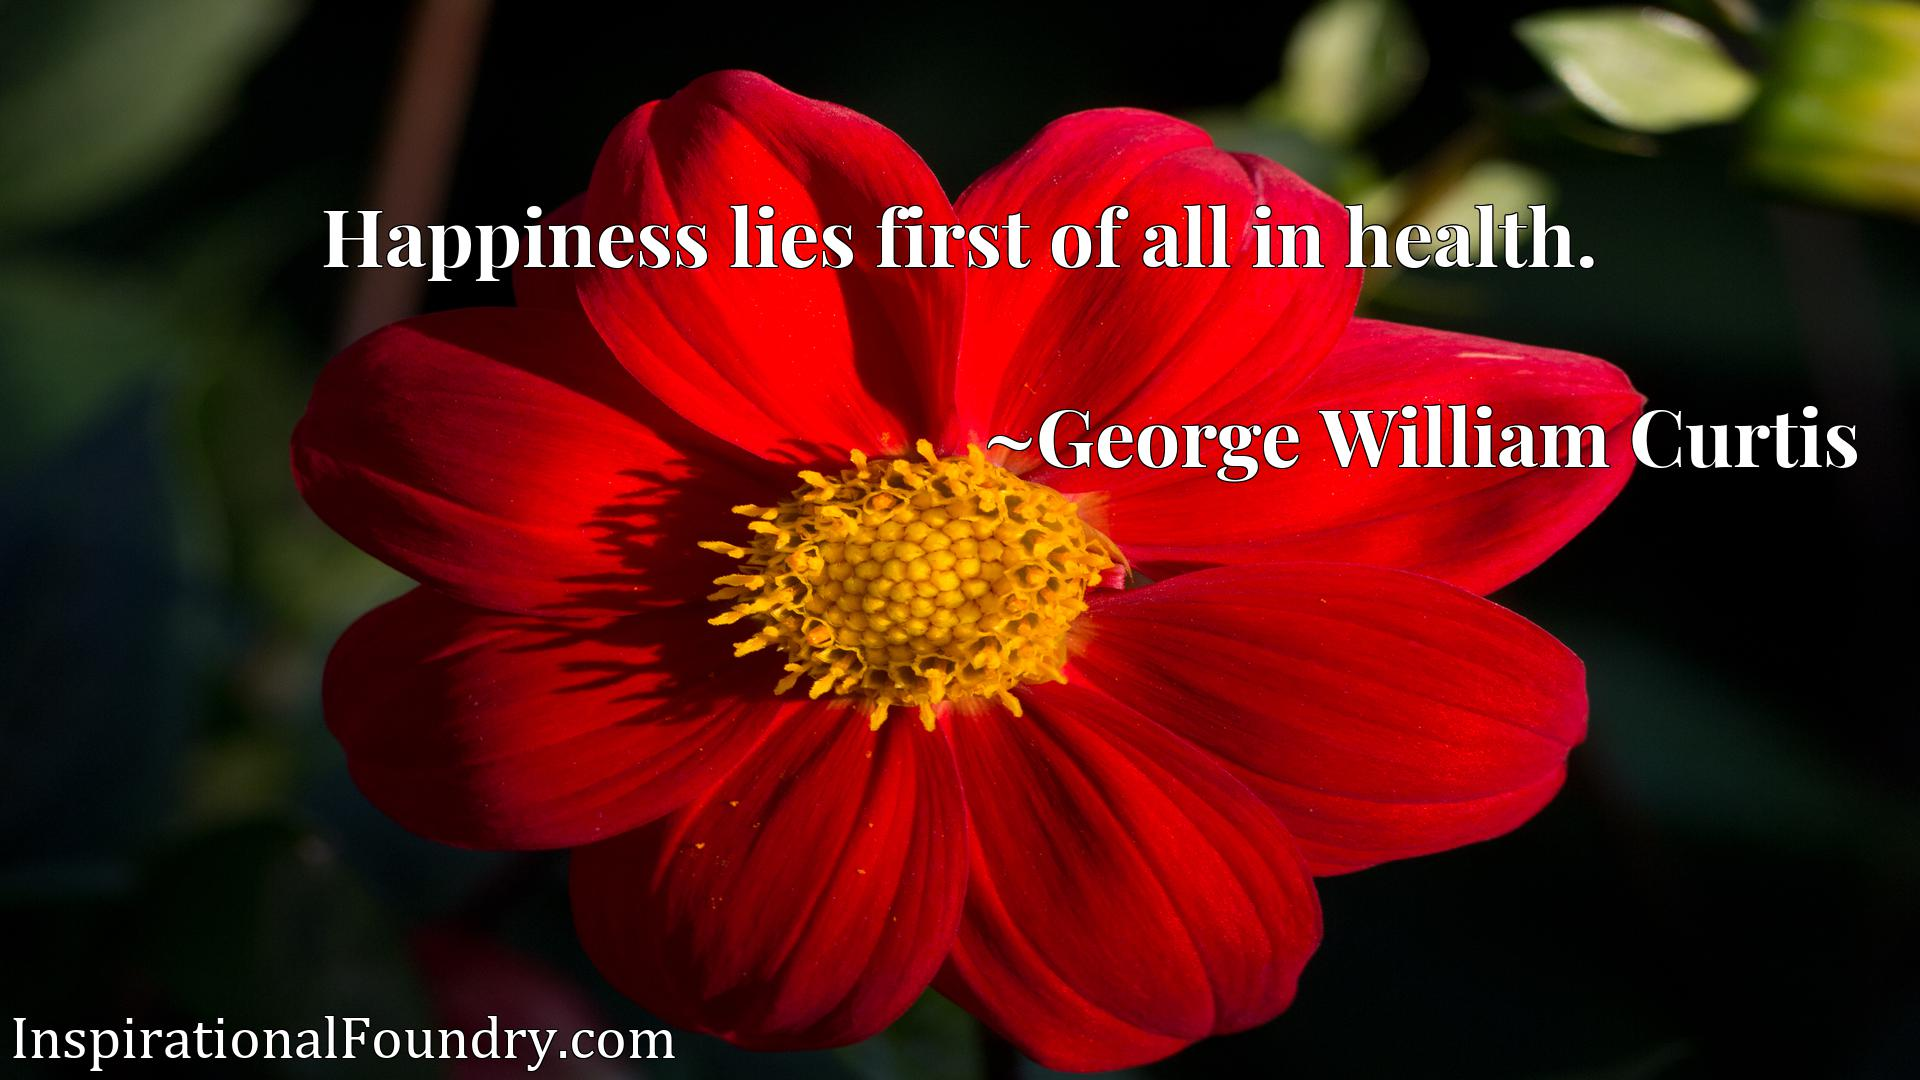 Happiness lies first of all in health.